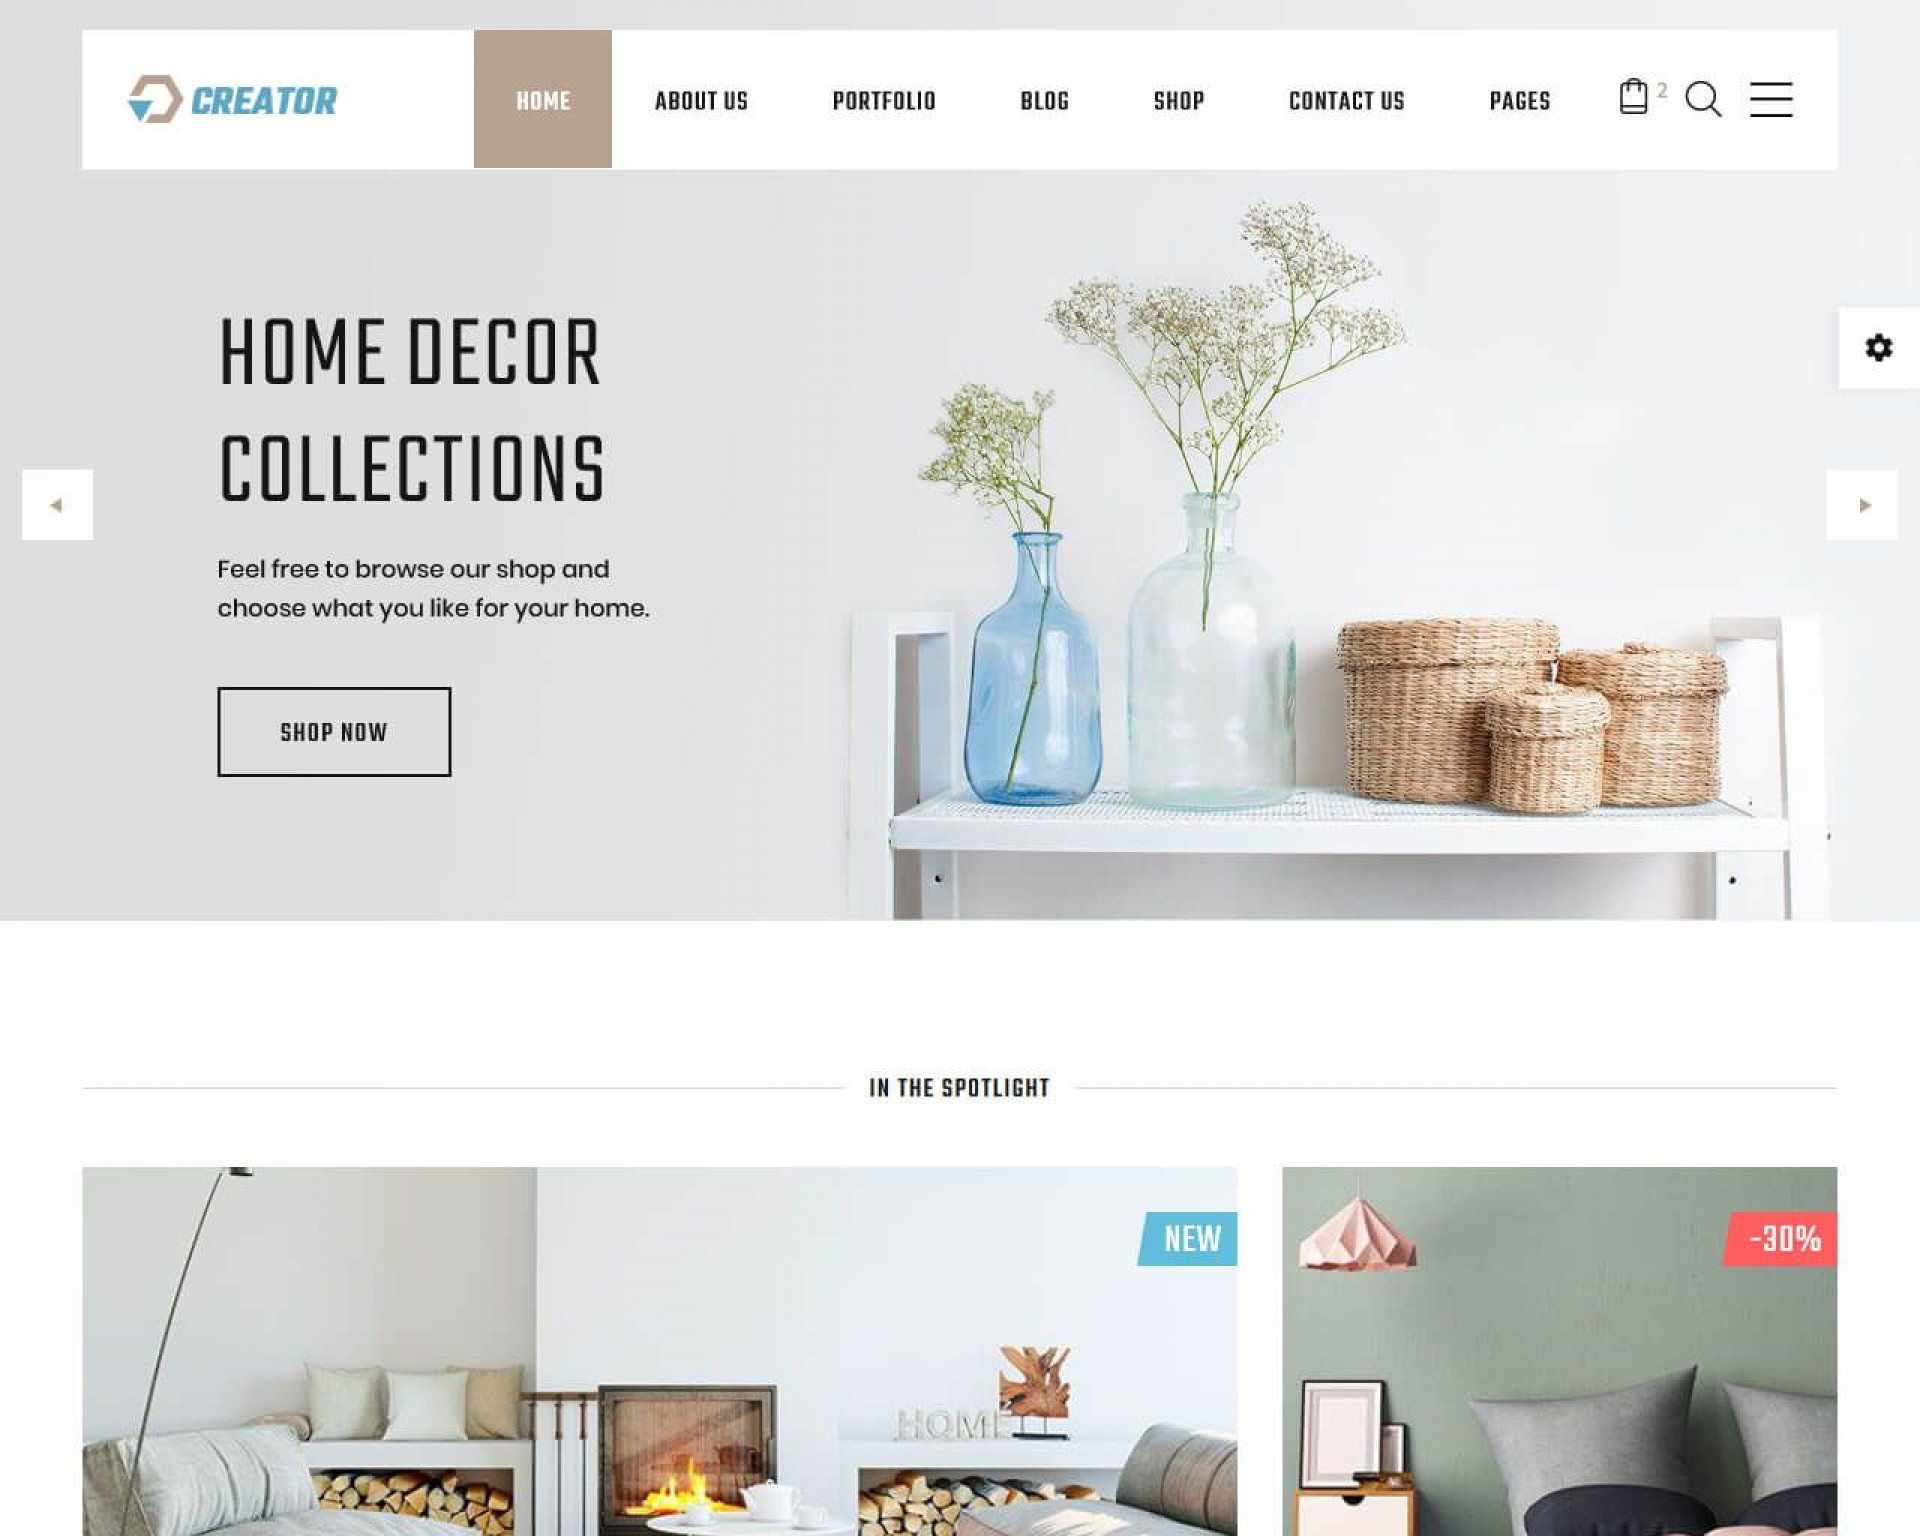 001 Breathtaking Interior Design Website Template High Resolution  Templates Company Free Download Html1920